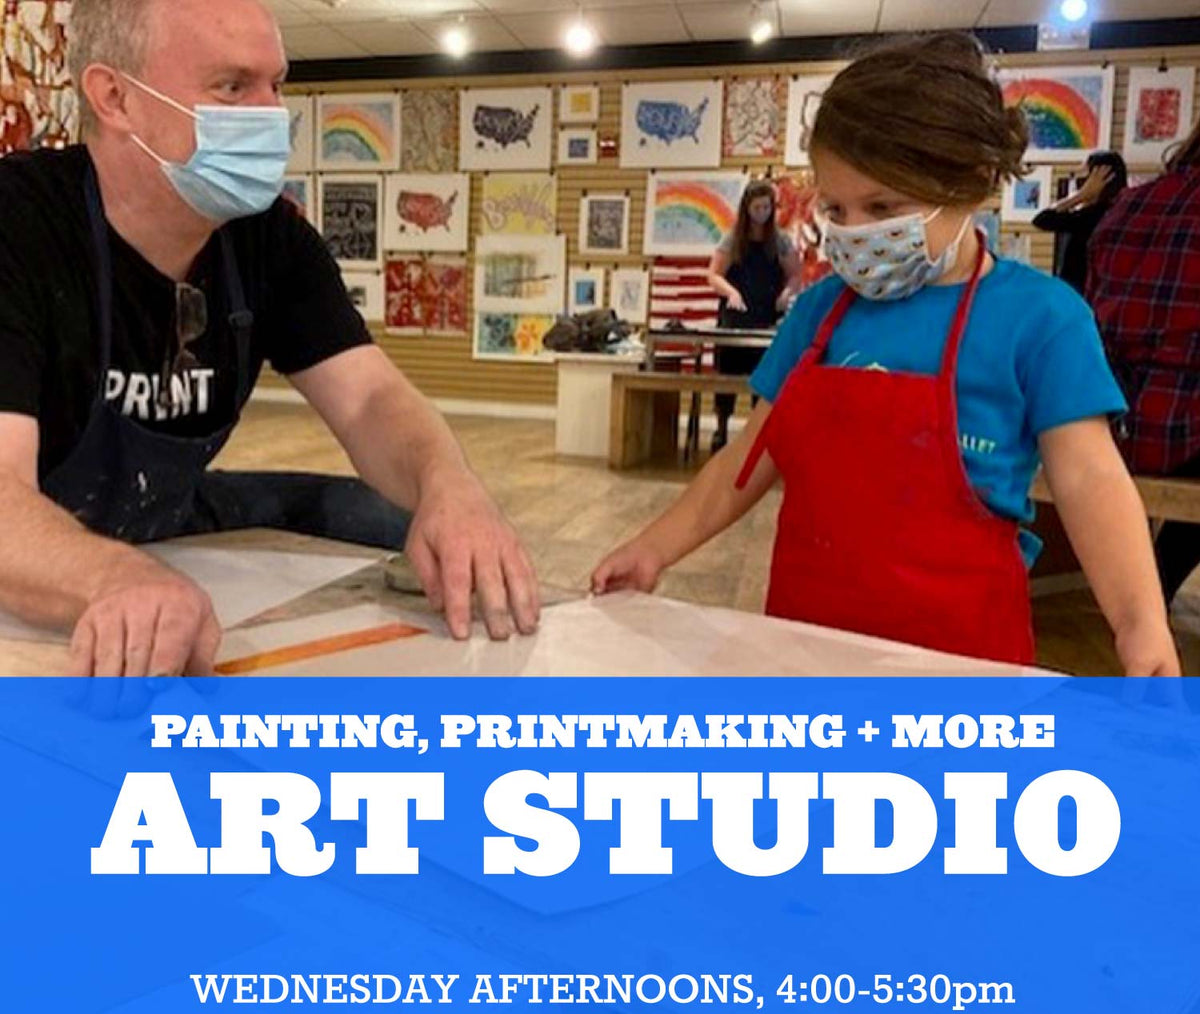 Art Studio at Little Pulp, Wednesdays 4:00-5:30pm